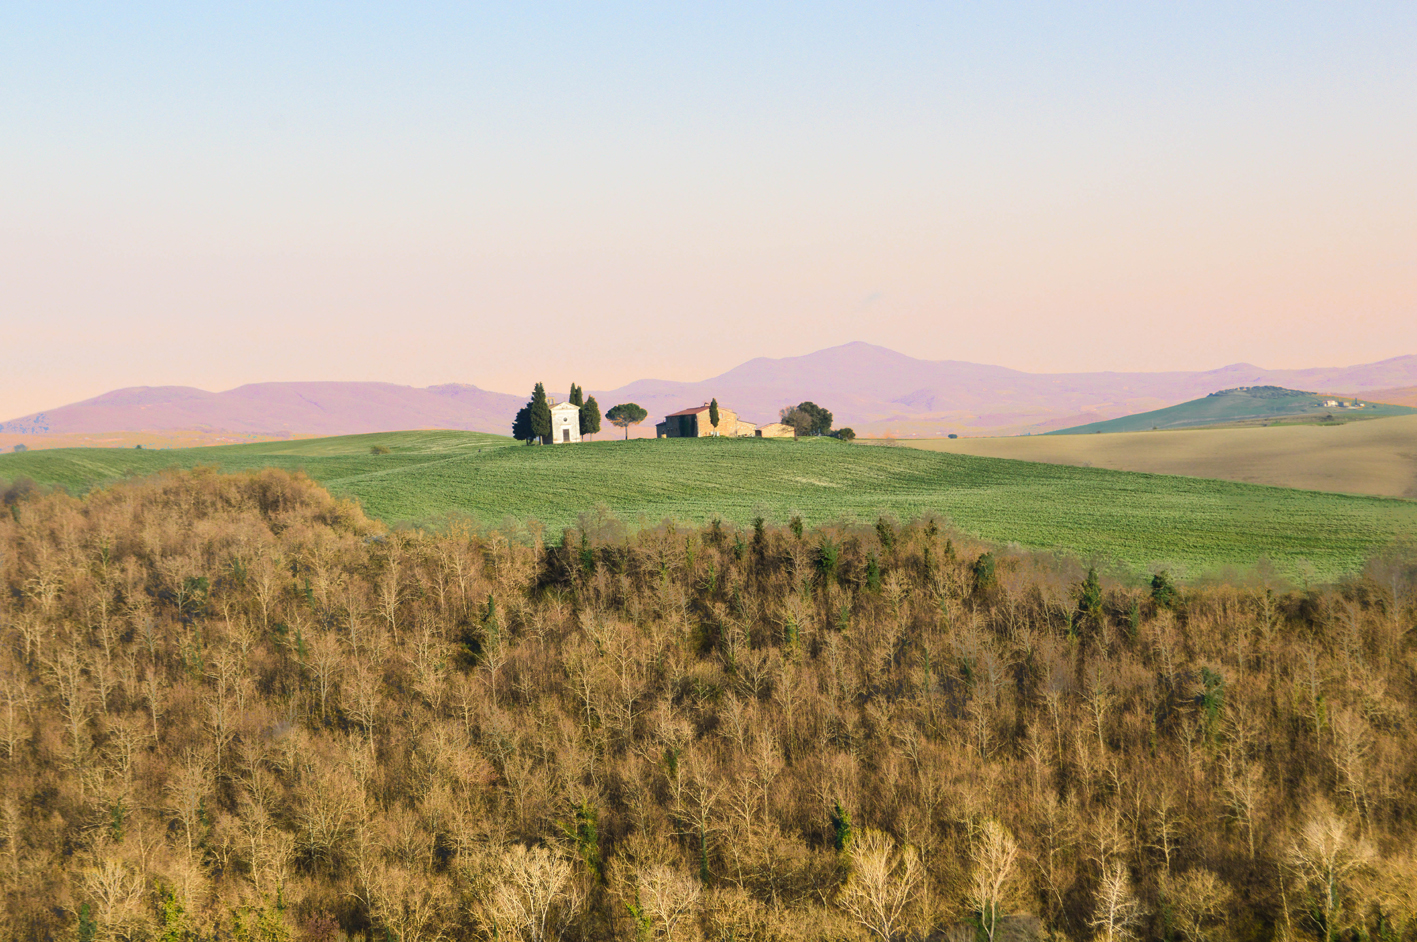 19 #WhereToGo : Val d'Orcia in Tuscany